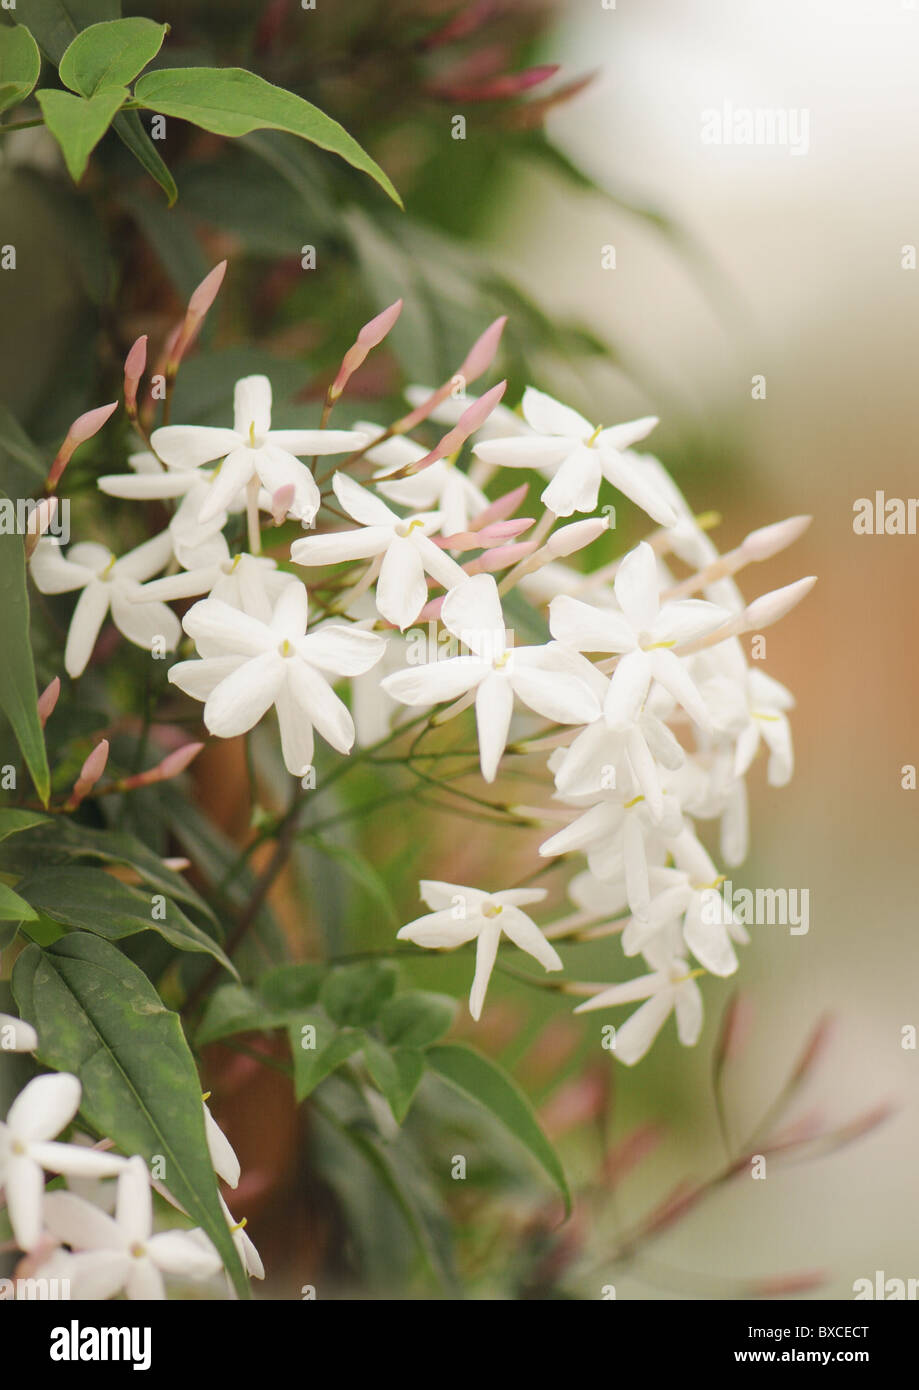 Small white scented flowers stock photos small white scented the delicate white flowers of jasminum polyanthum pink jasmine stock image mightylinksfo